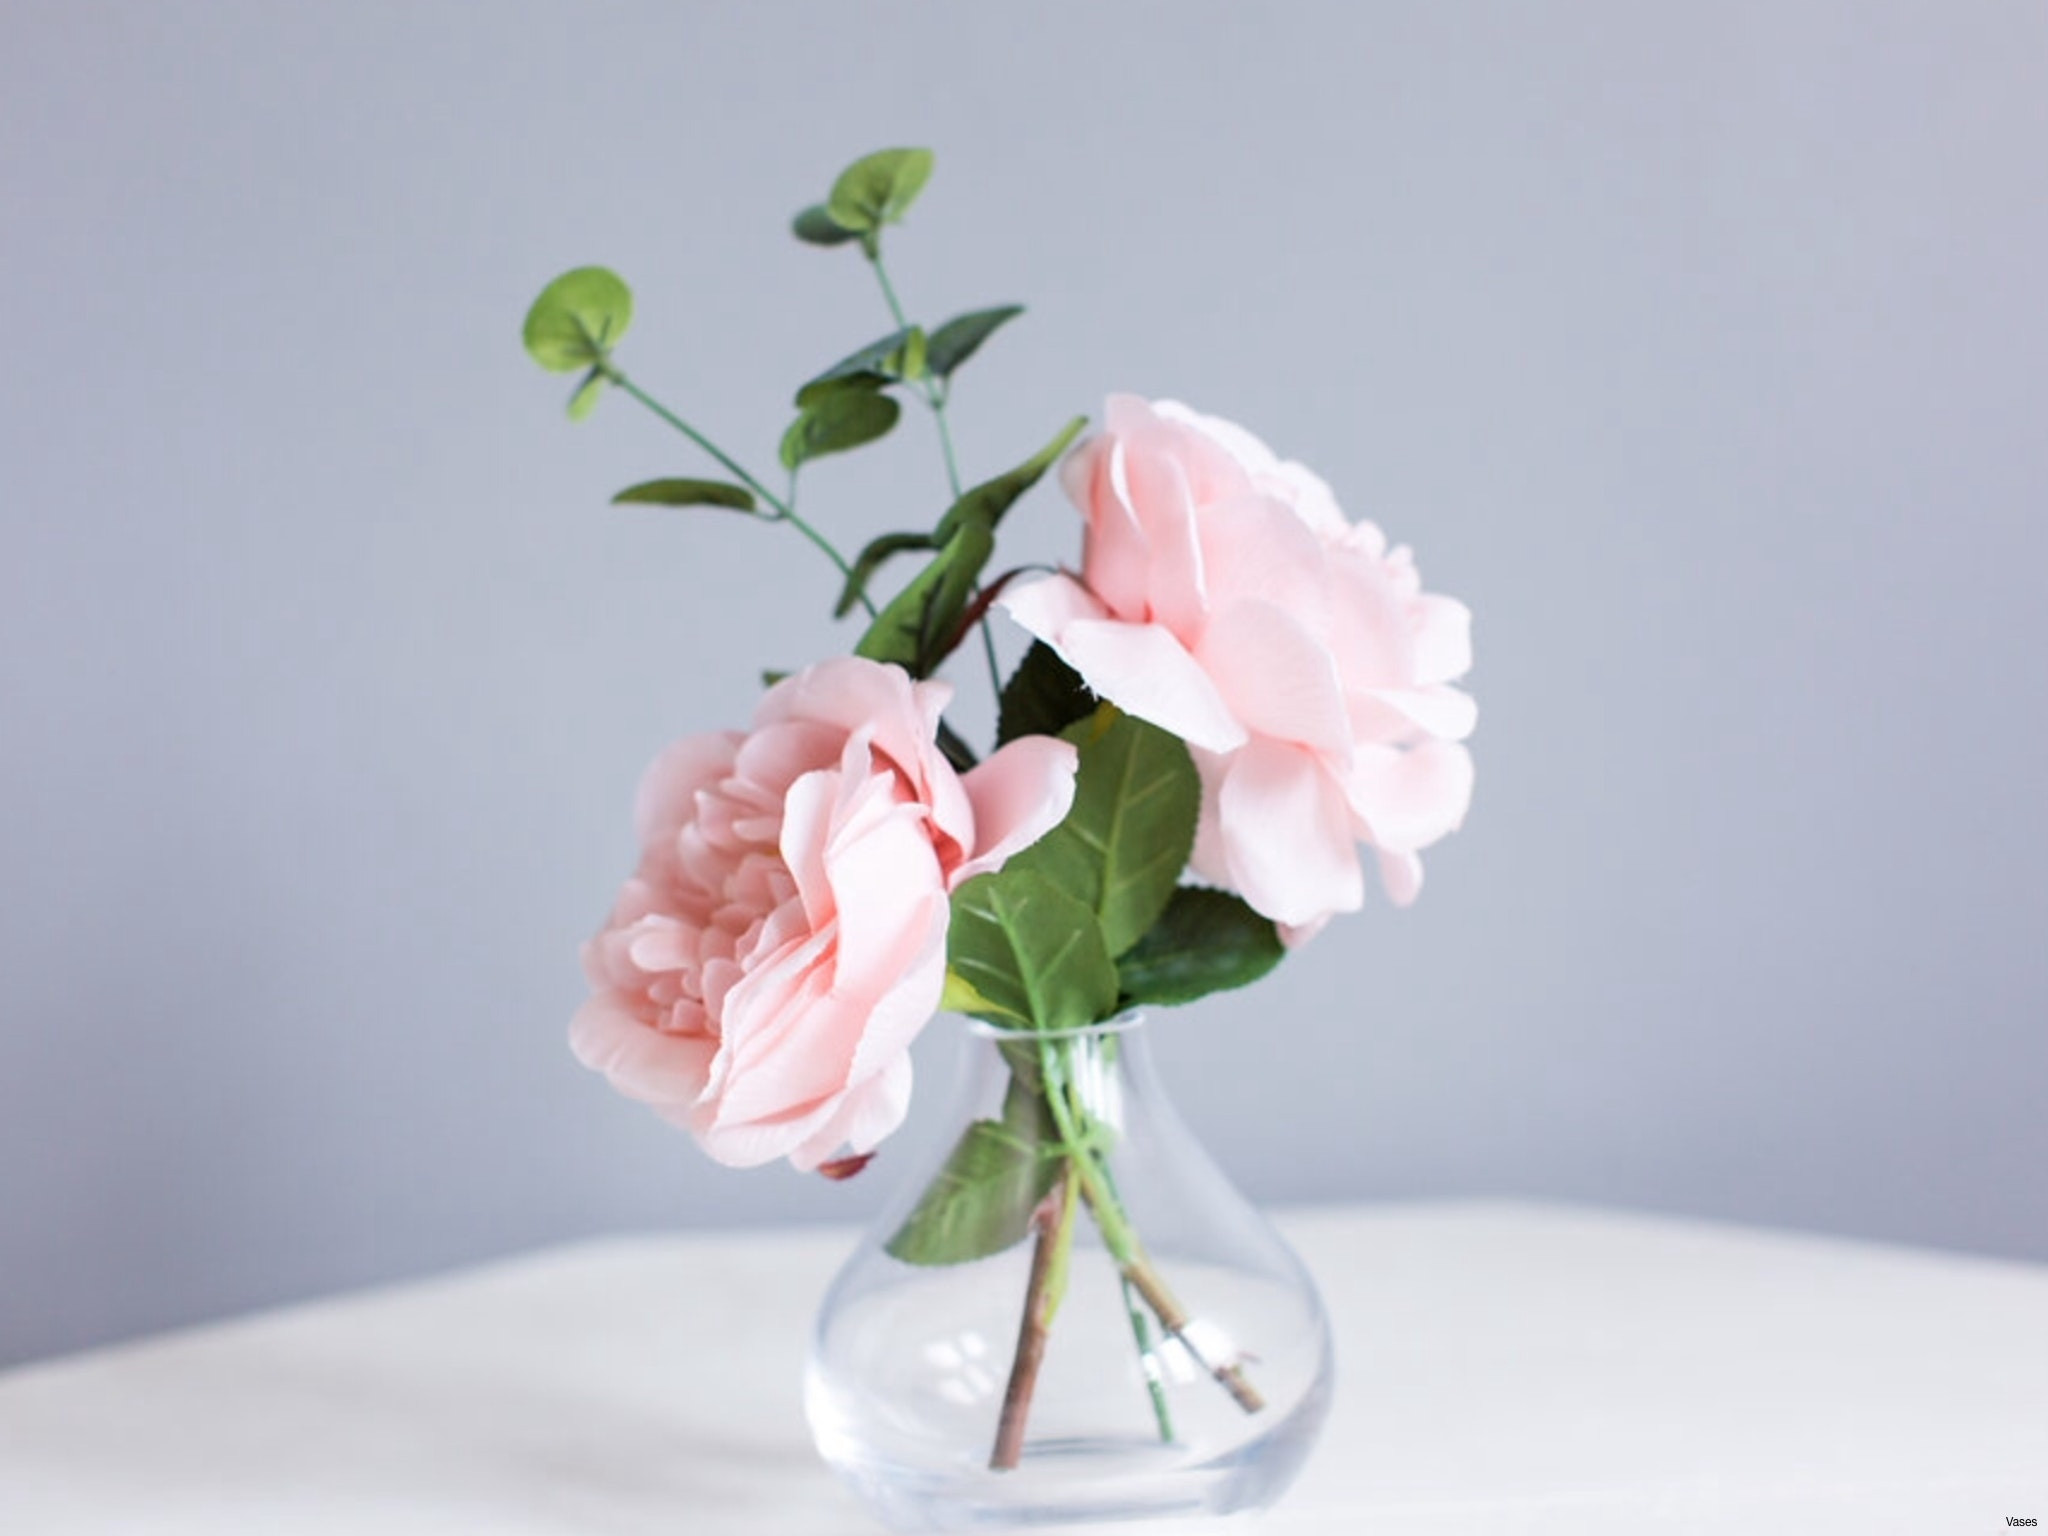 25 Best Fake Flower Vase Fillers 2021 free download fake flower vase fillers of 27 beautiful flower vase definition flower decoration ideas pertaining to flower vase definition awesome 36 beautiful picture arrangements